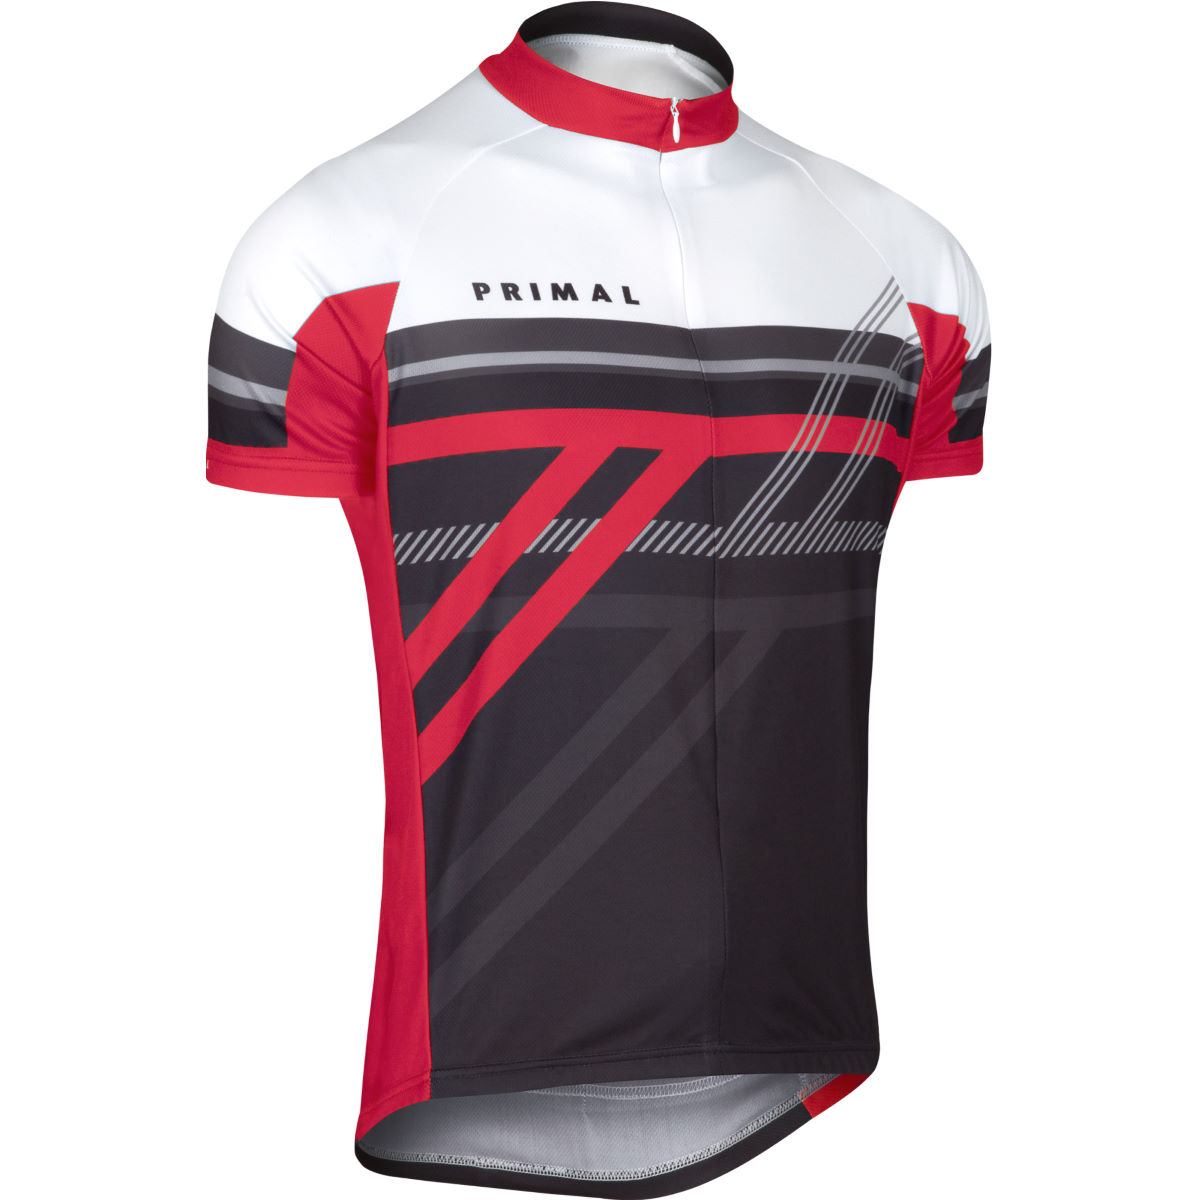 Primal Reverb Jersey - Extra Large White/Red/Grey